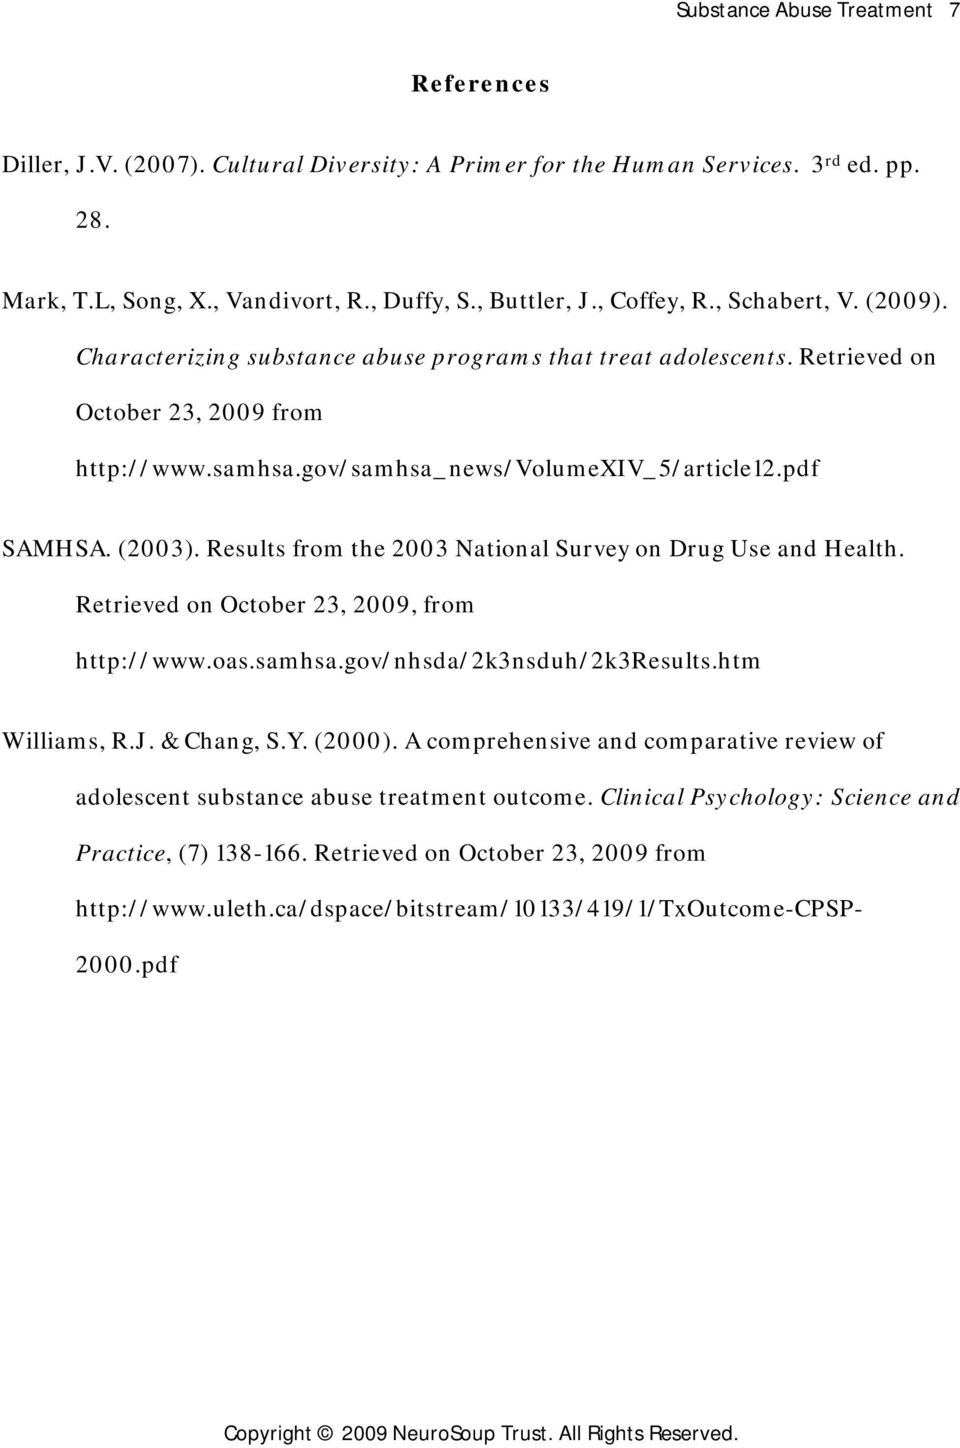 Results from the 2003 National Survey on Drug Use and Health. Retrieved on October 23, 2009, from http://www.oas.samhsa.gov/nhsda/2k3nsduh/2k3results.htm Williams, R.J. & Chang, S.Y. (2000).